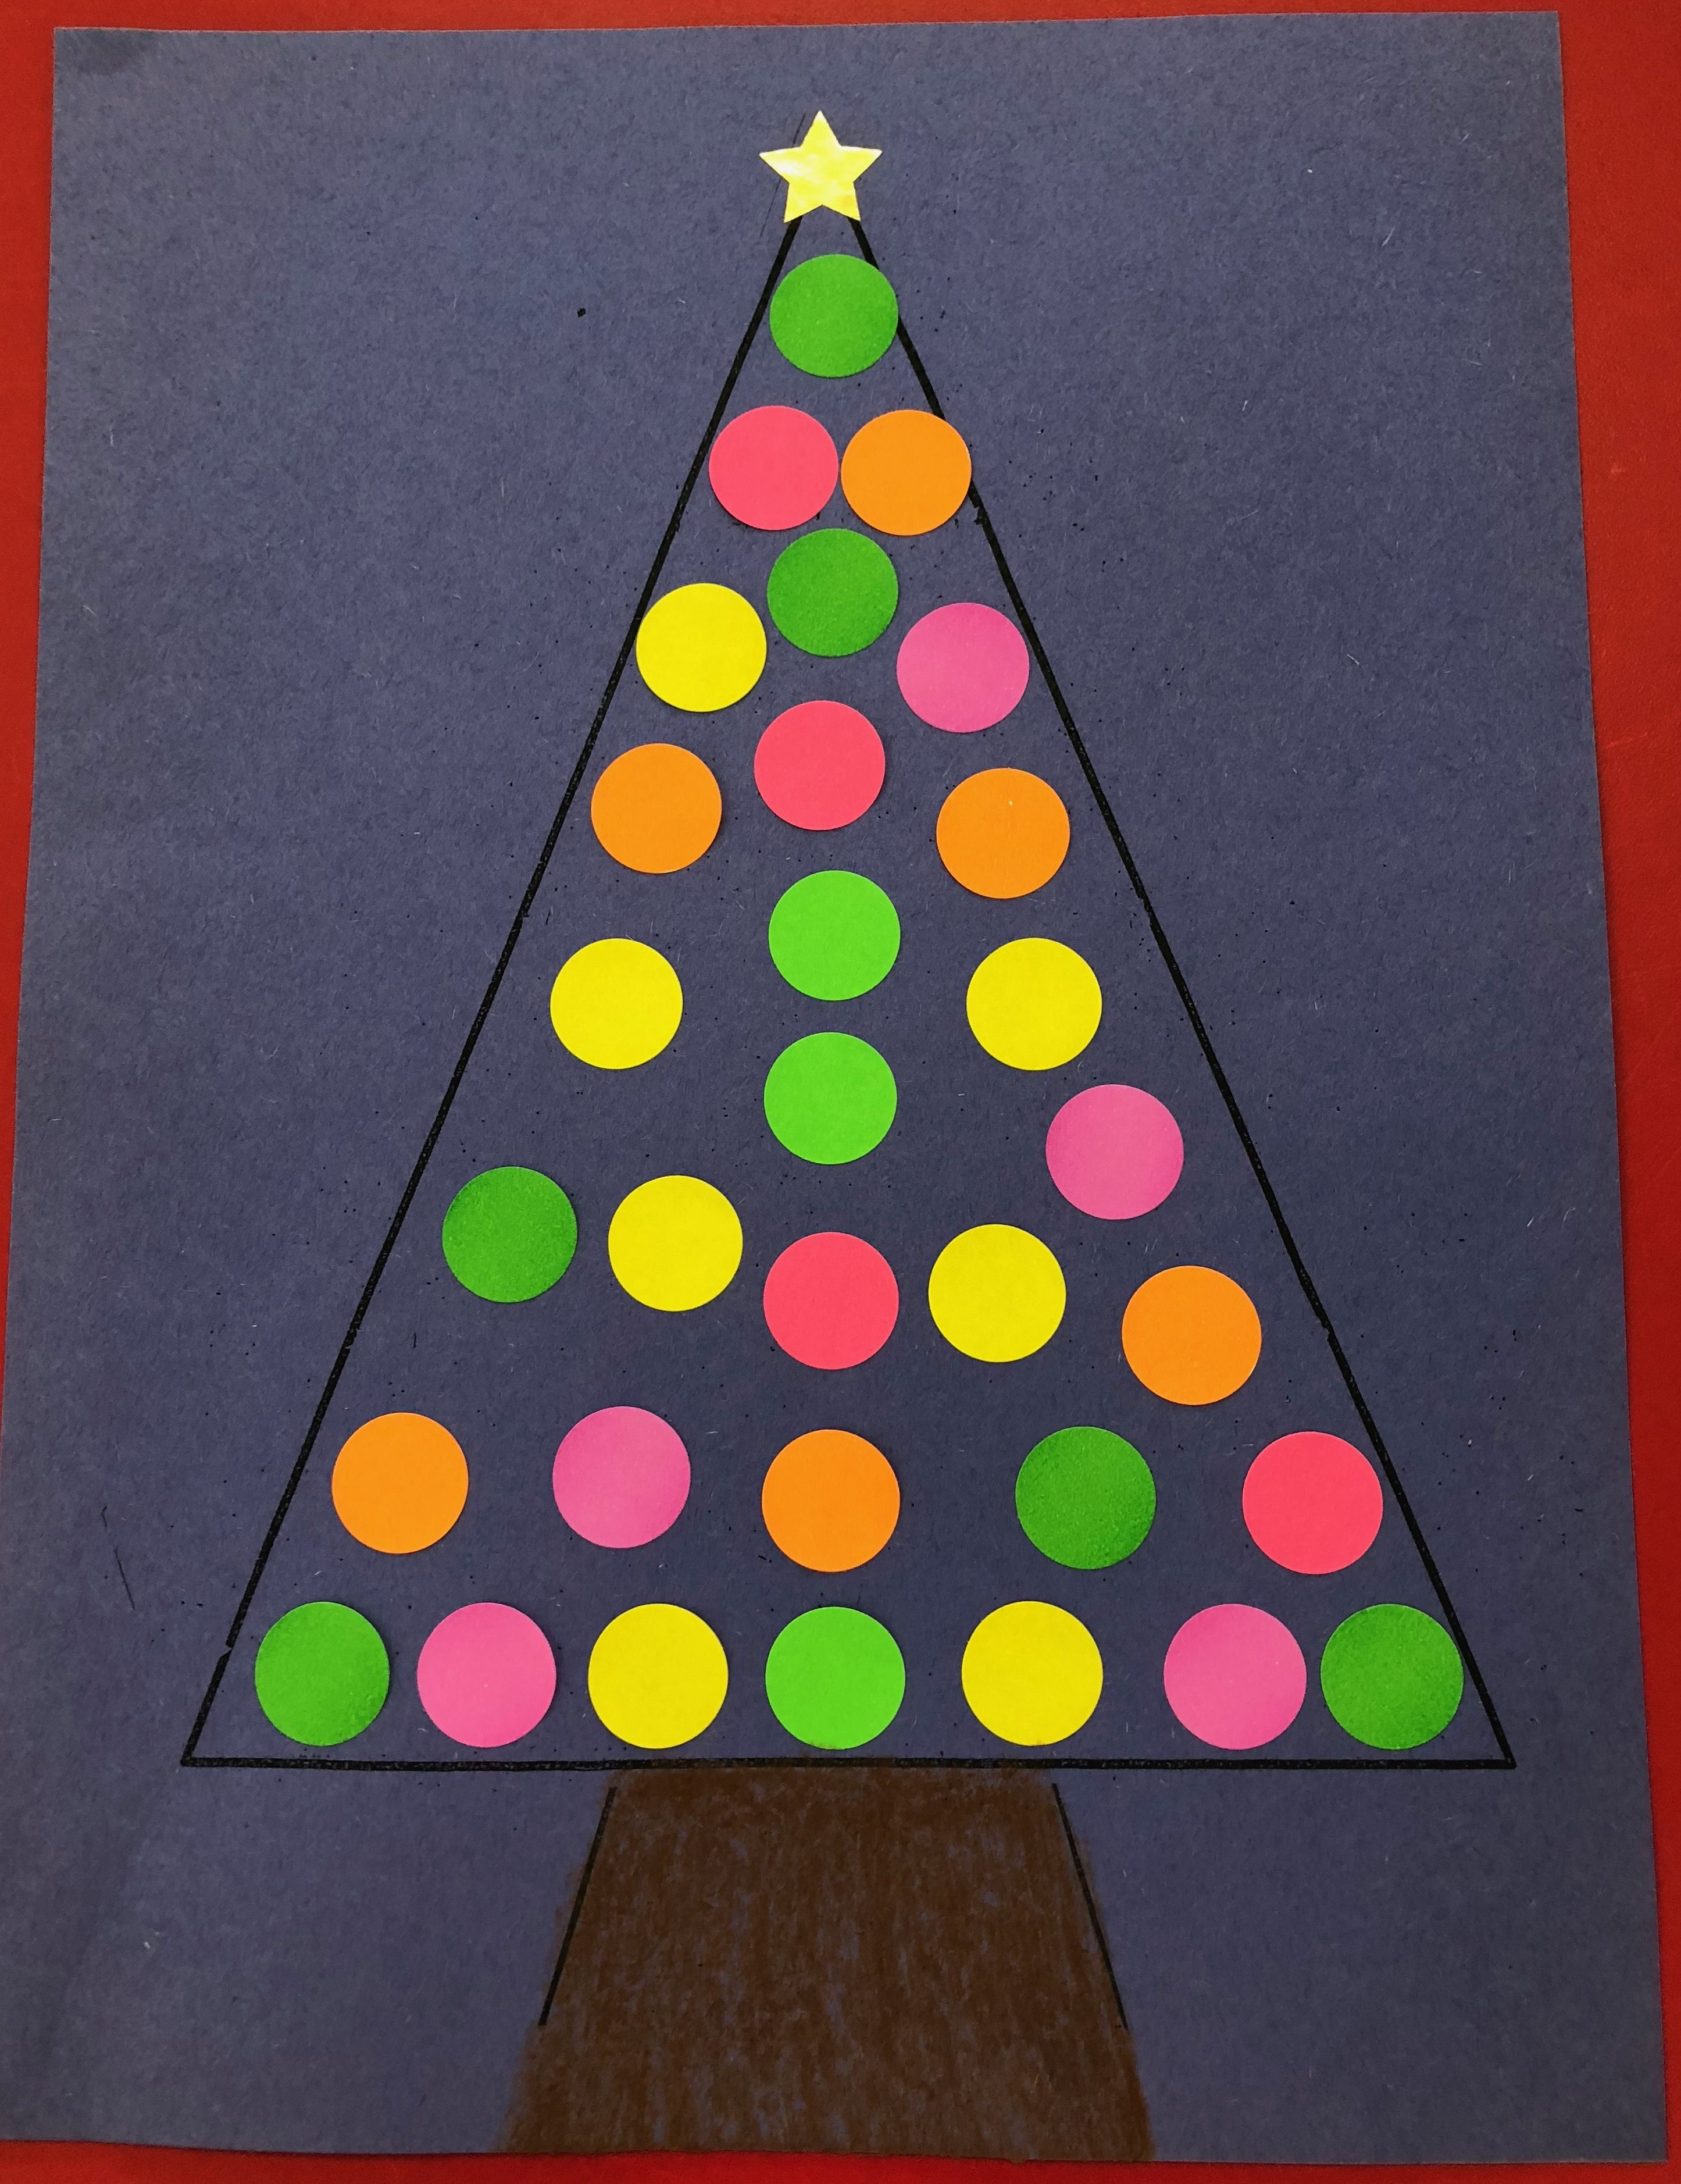 XmasChristmas Tree (solid color circle labels). (With